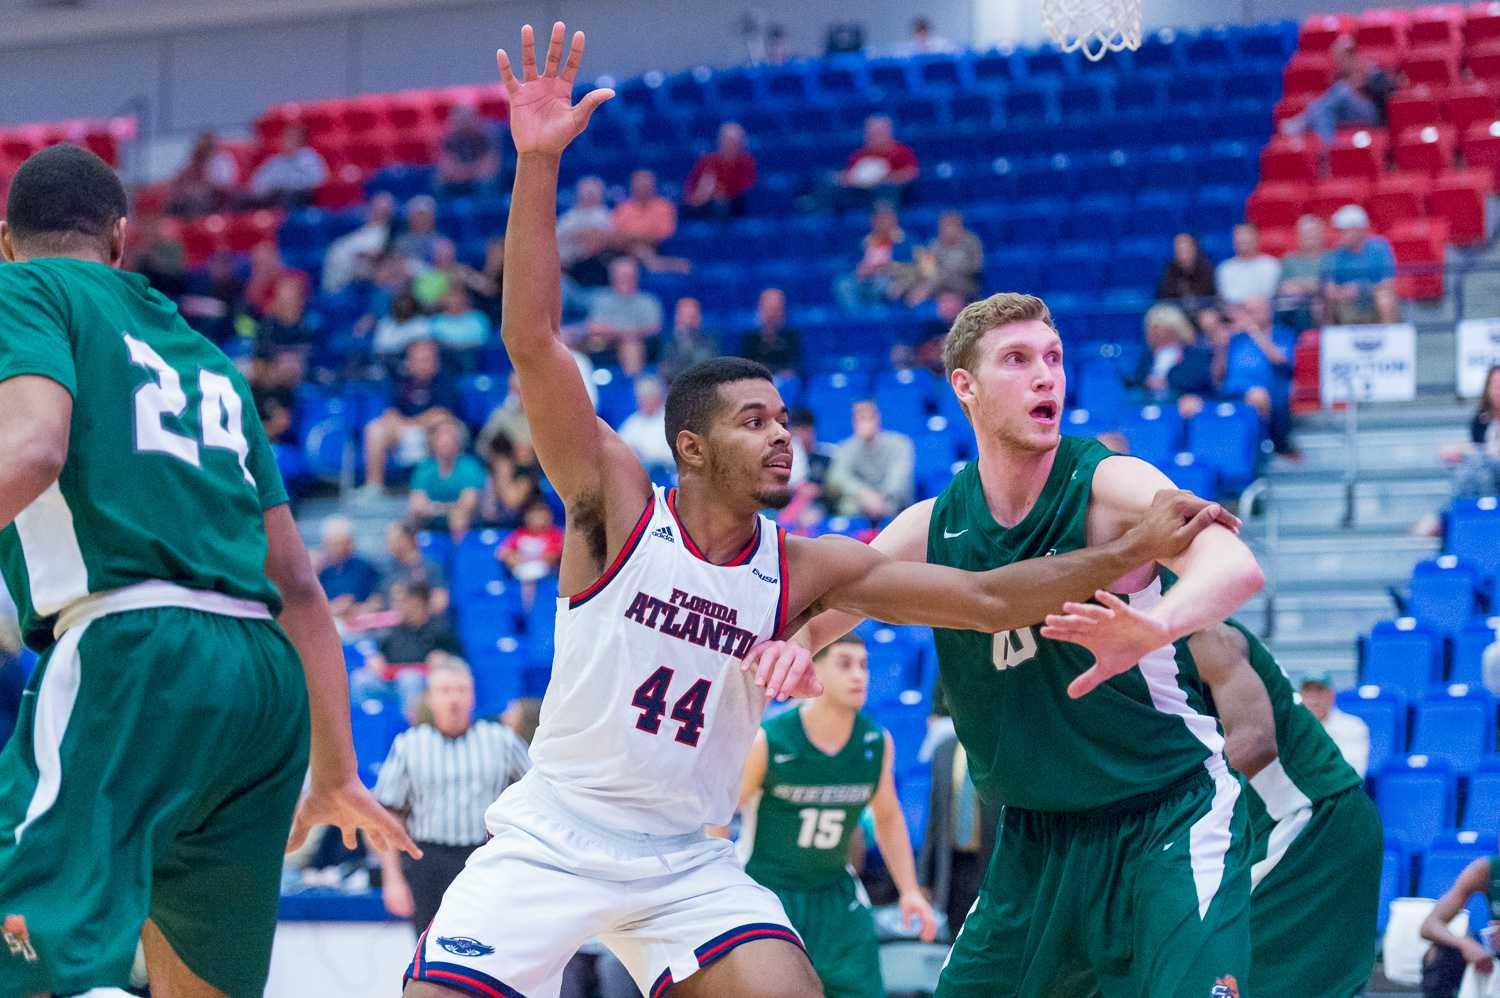 FAU forward Kelvin Penn calls for the ball under the basket.